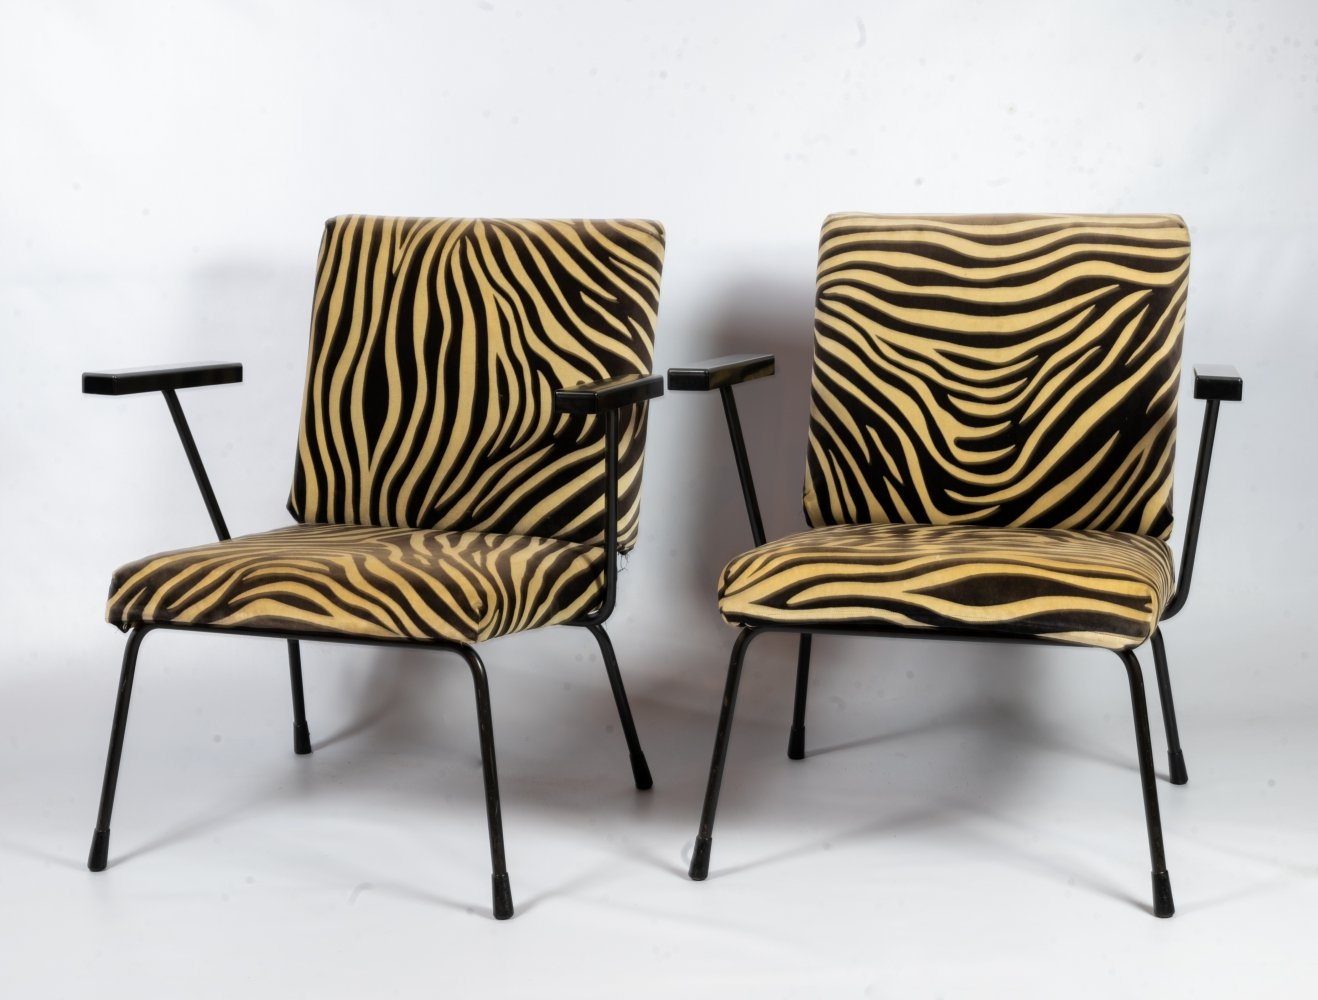 Pair of 1401 arm chairs by Wim Rietveld for Gispen, 1960s